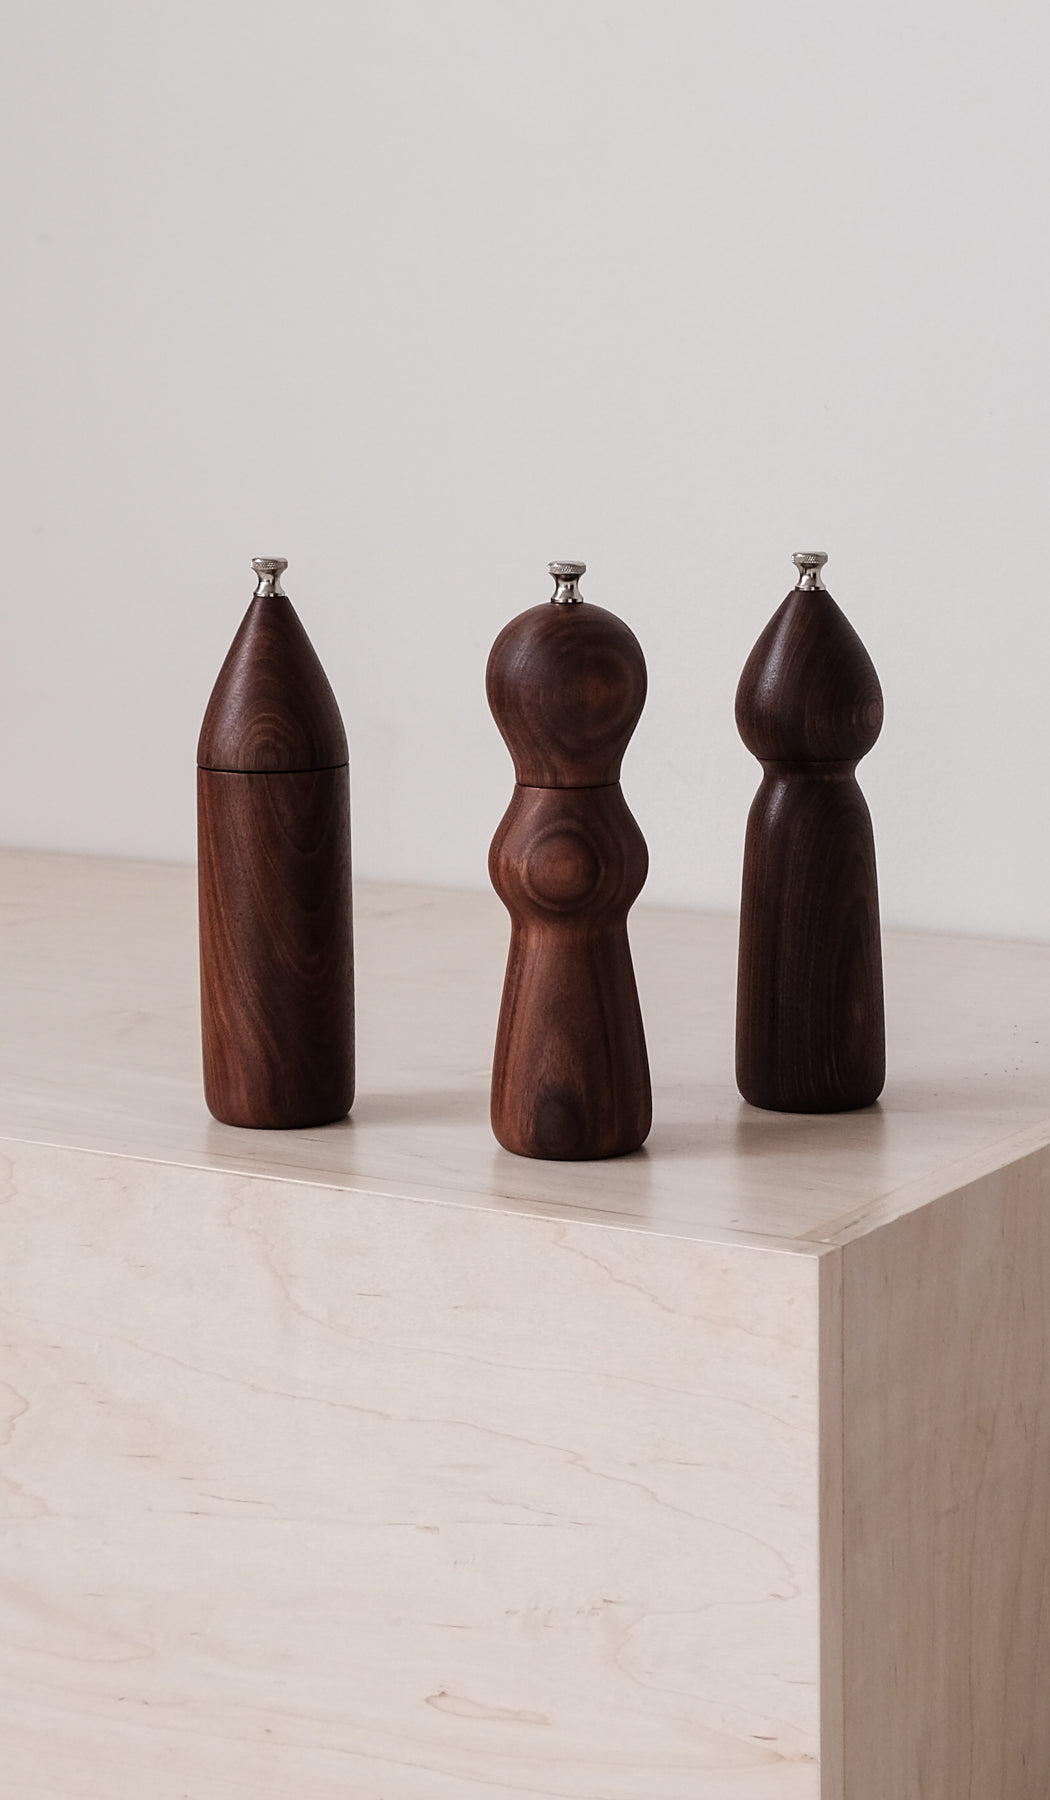 De Jong & Co Walnut Pepper Mills, Tabletop, De Jong & Co, SPARTAN SHOP